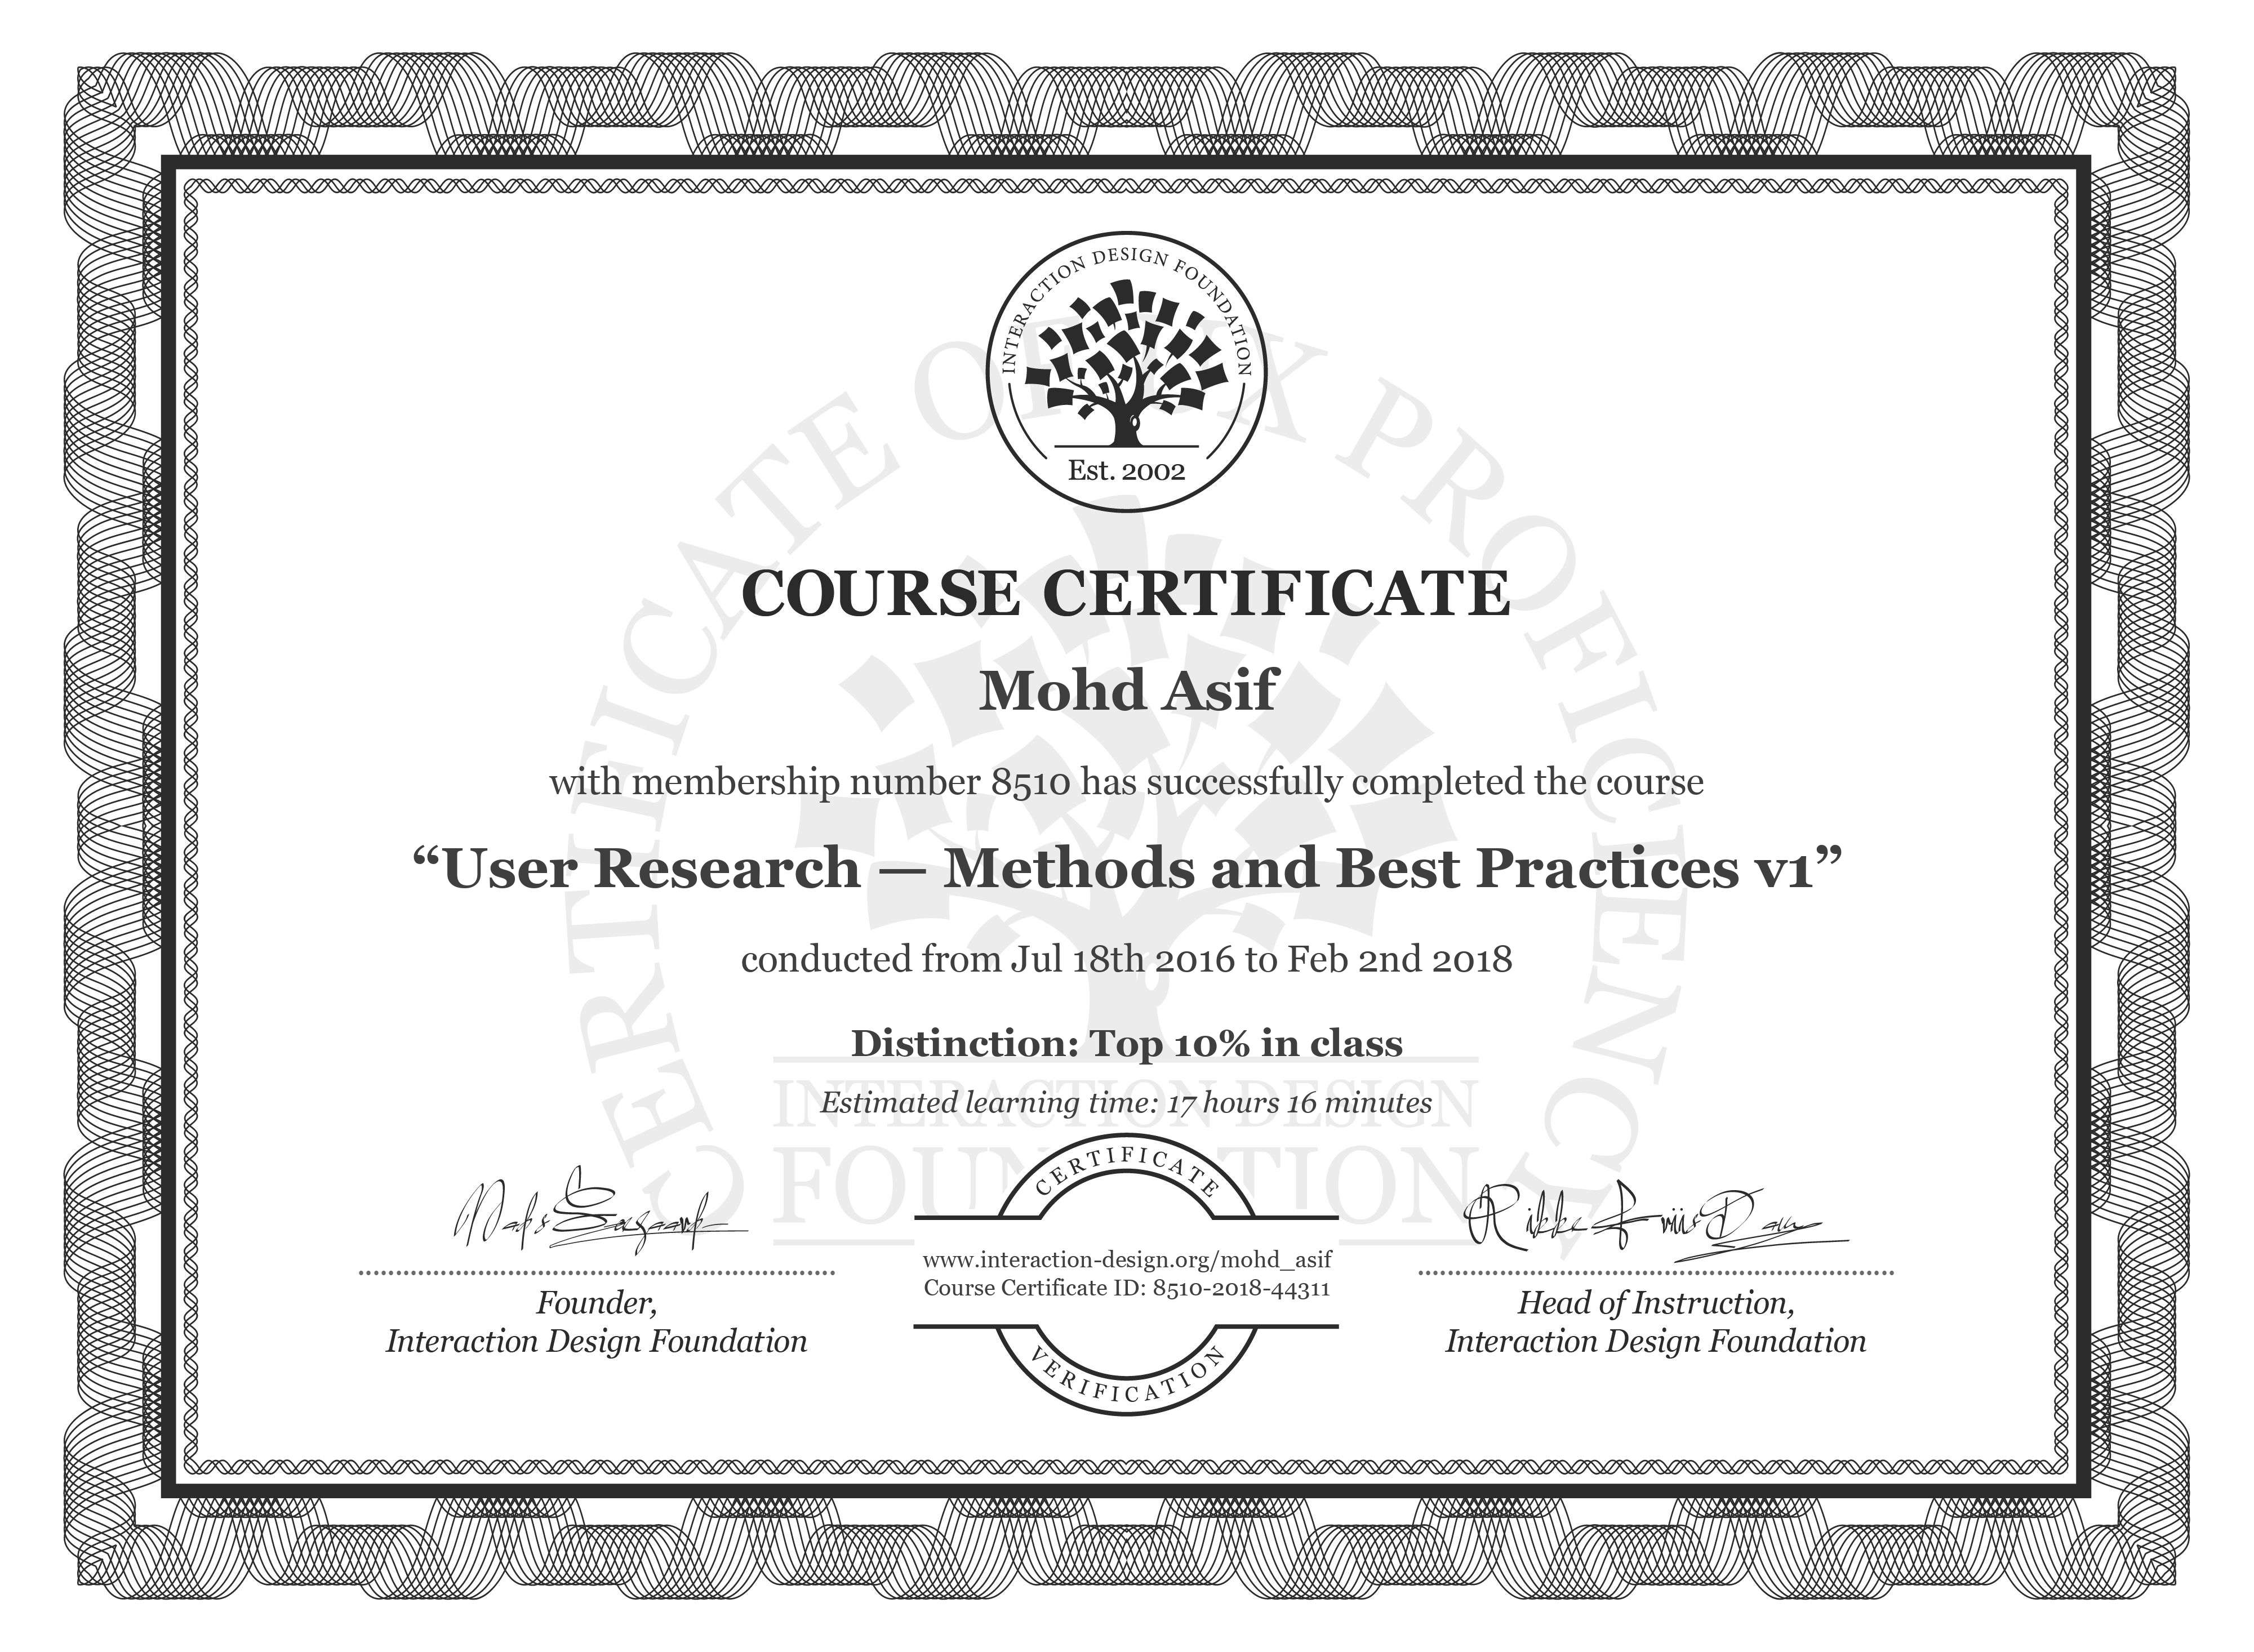 Mohd Asif: Course Certificate - User Research — Methods and Best Practices